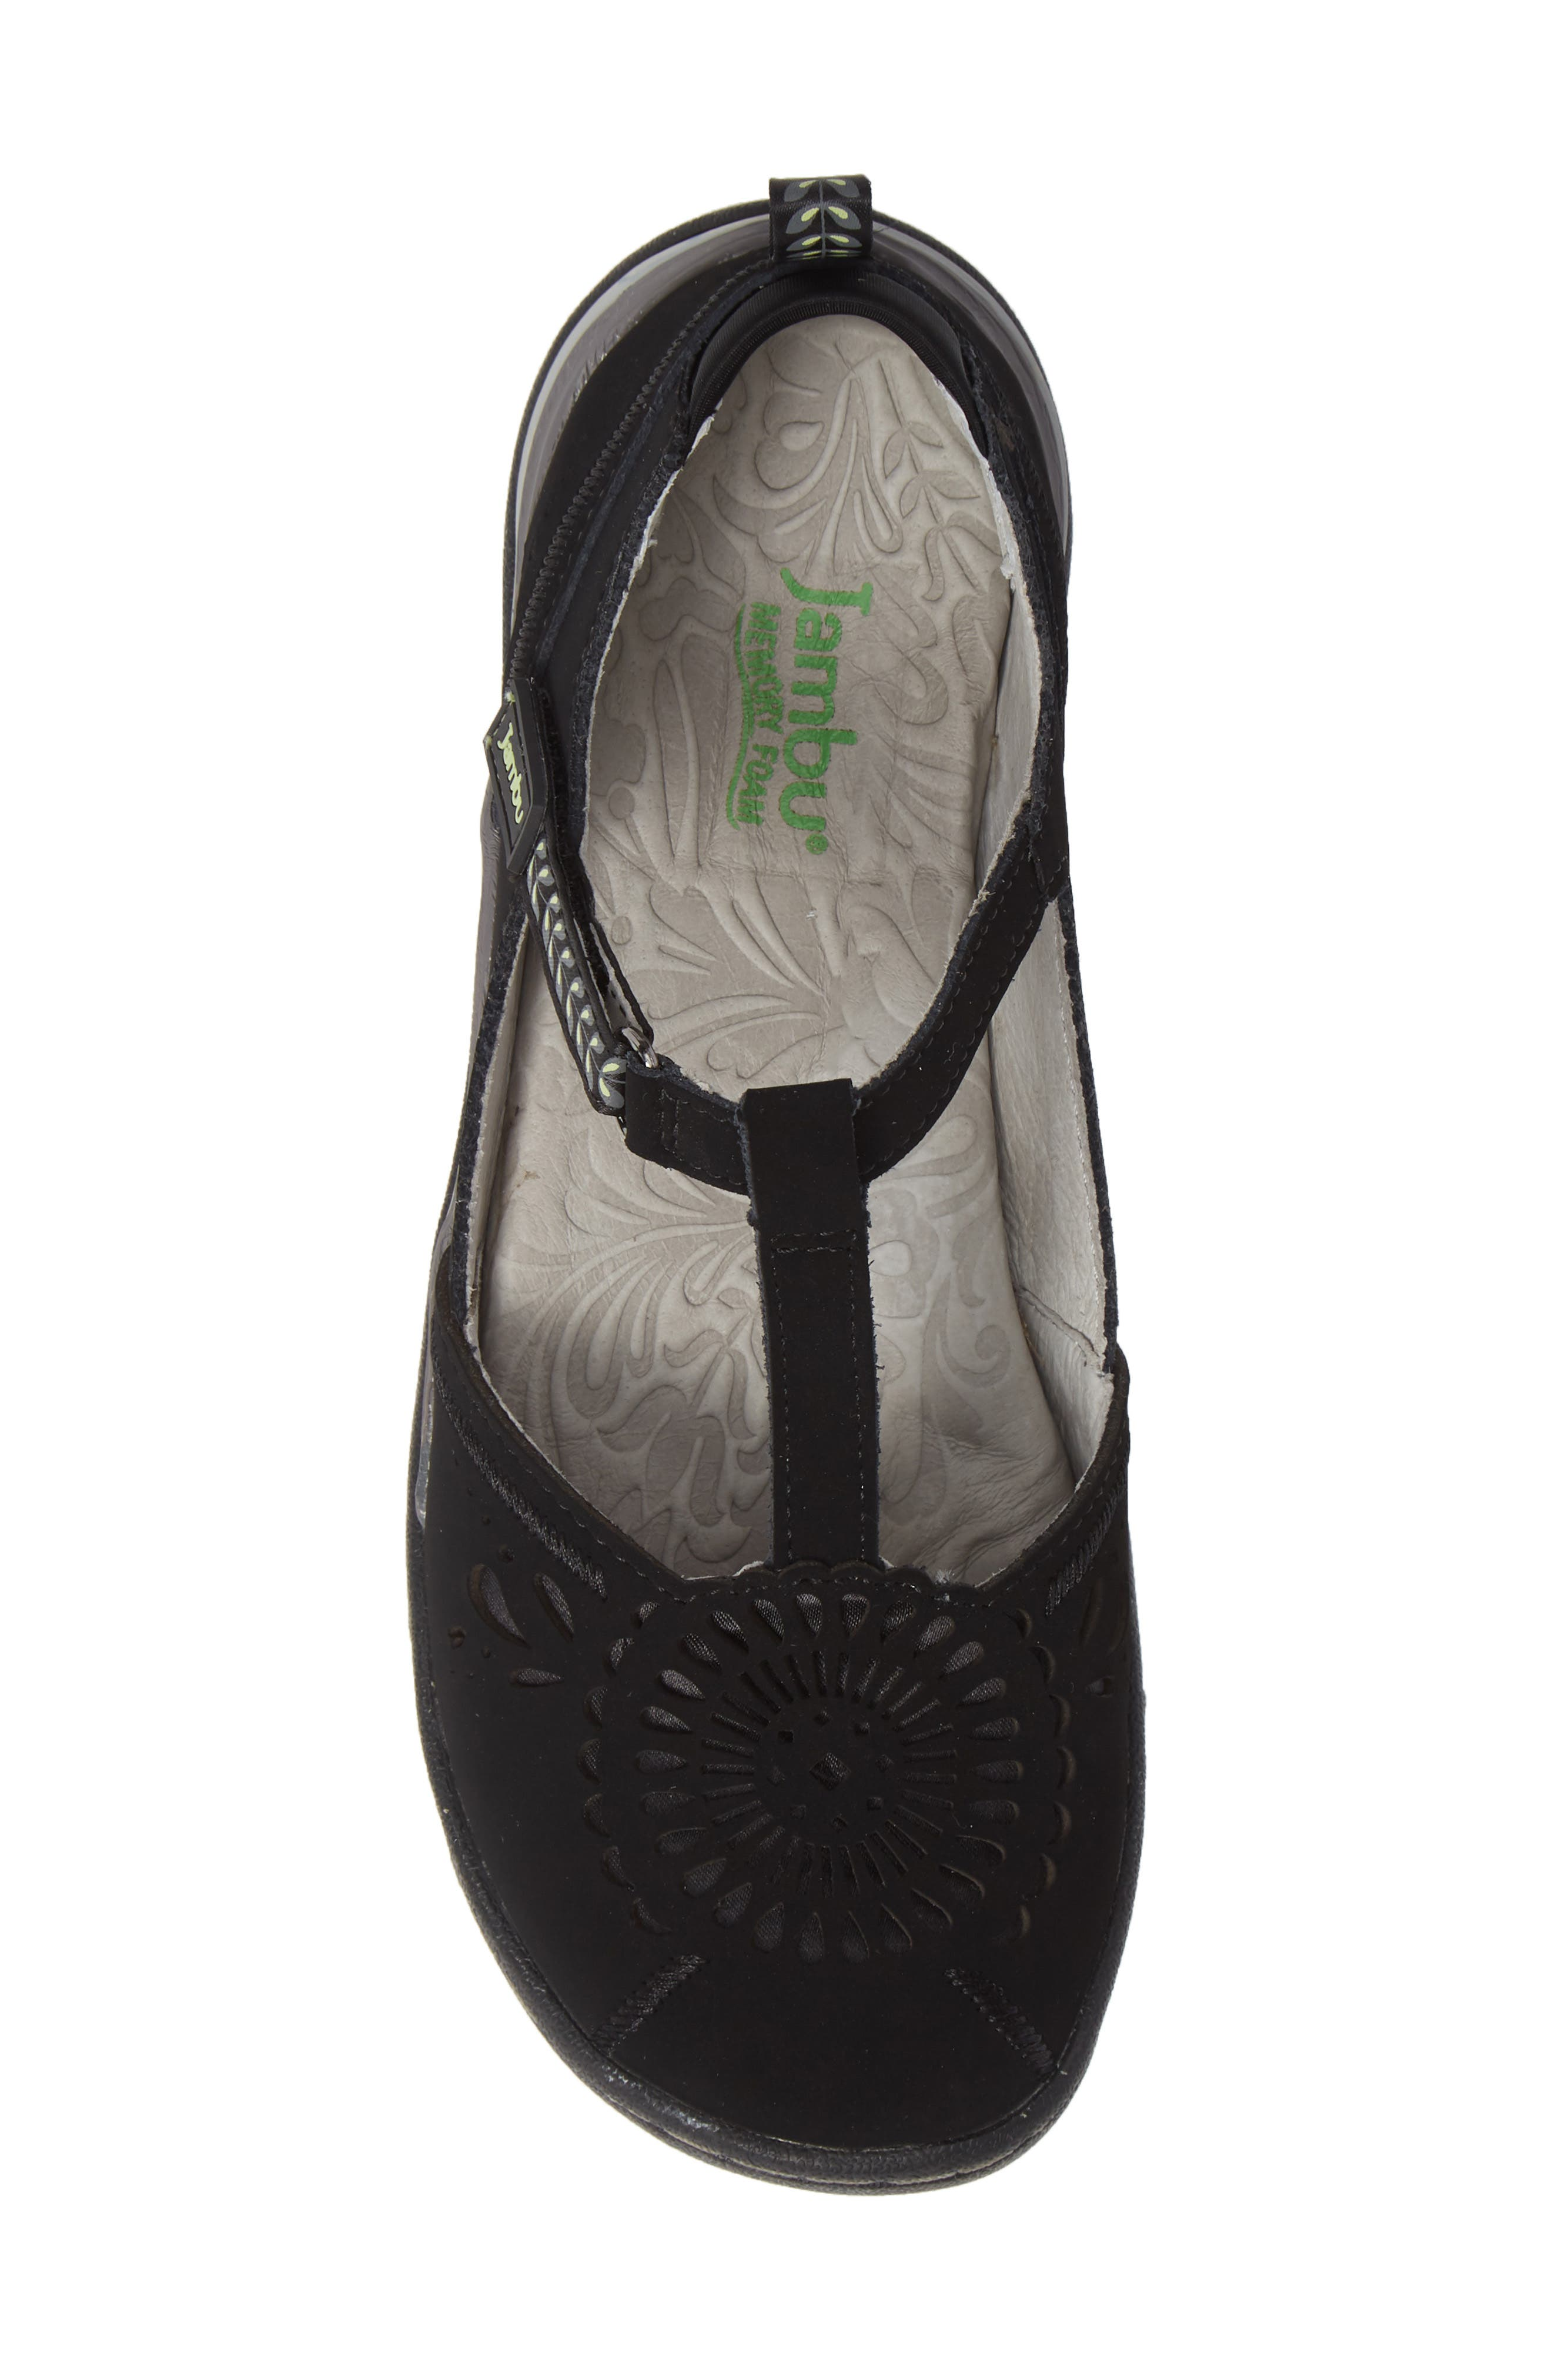 Sunkist Strappy Sneaker,                             Alternate thumbnail 5, color,                             BLACK/ CHIVE NUBUCK LEATHER